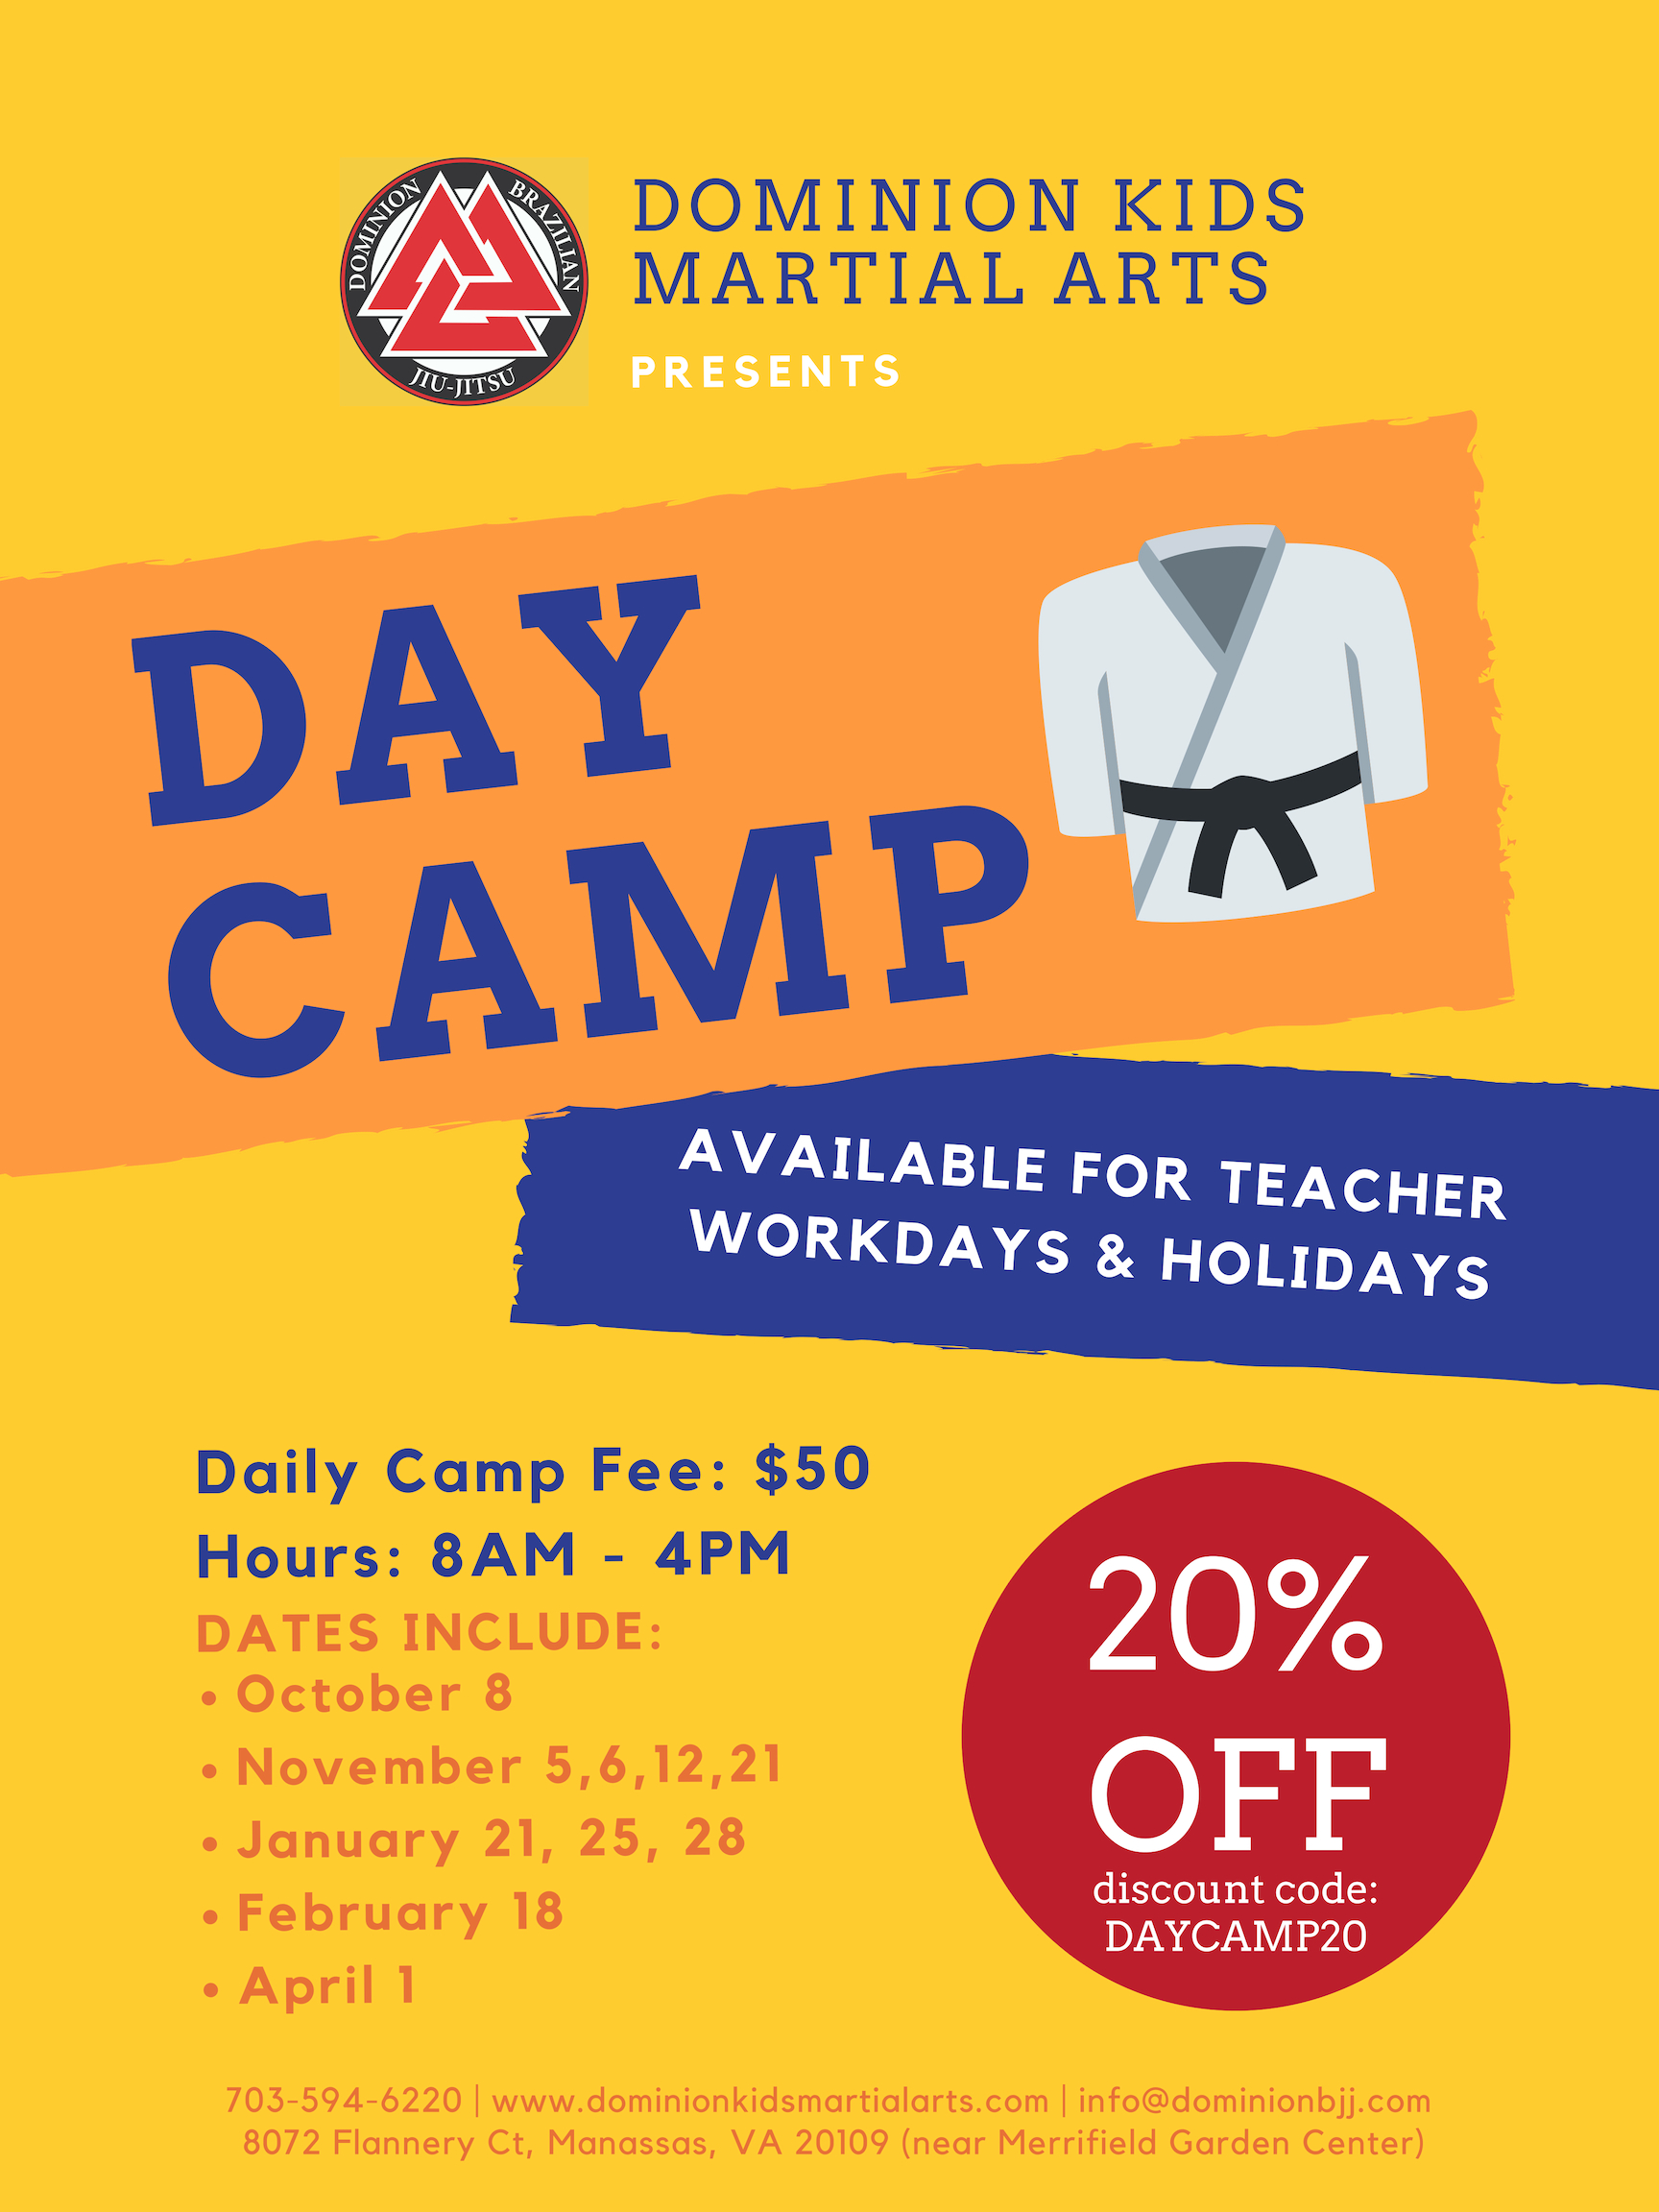 Day Camp at Dominion Kids Martial Arts